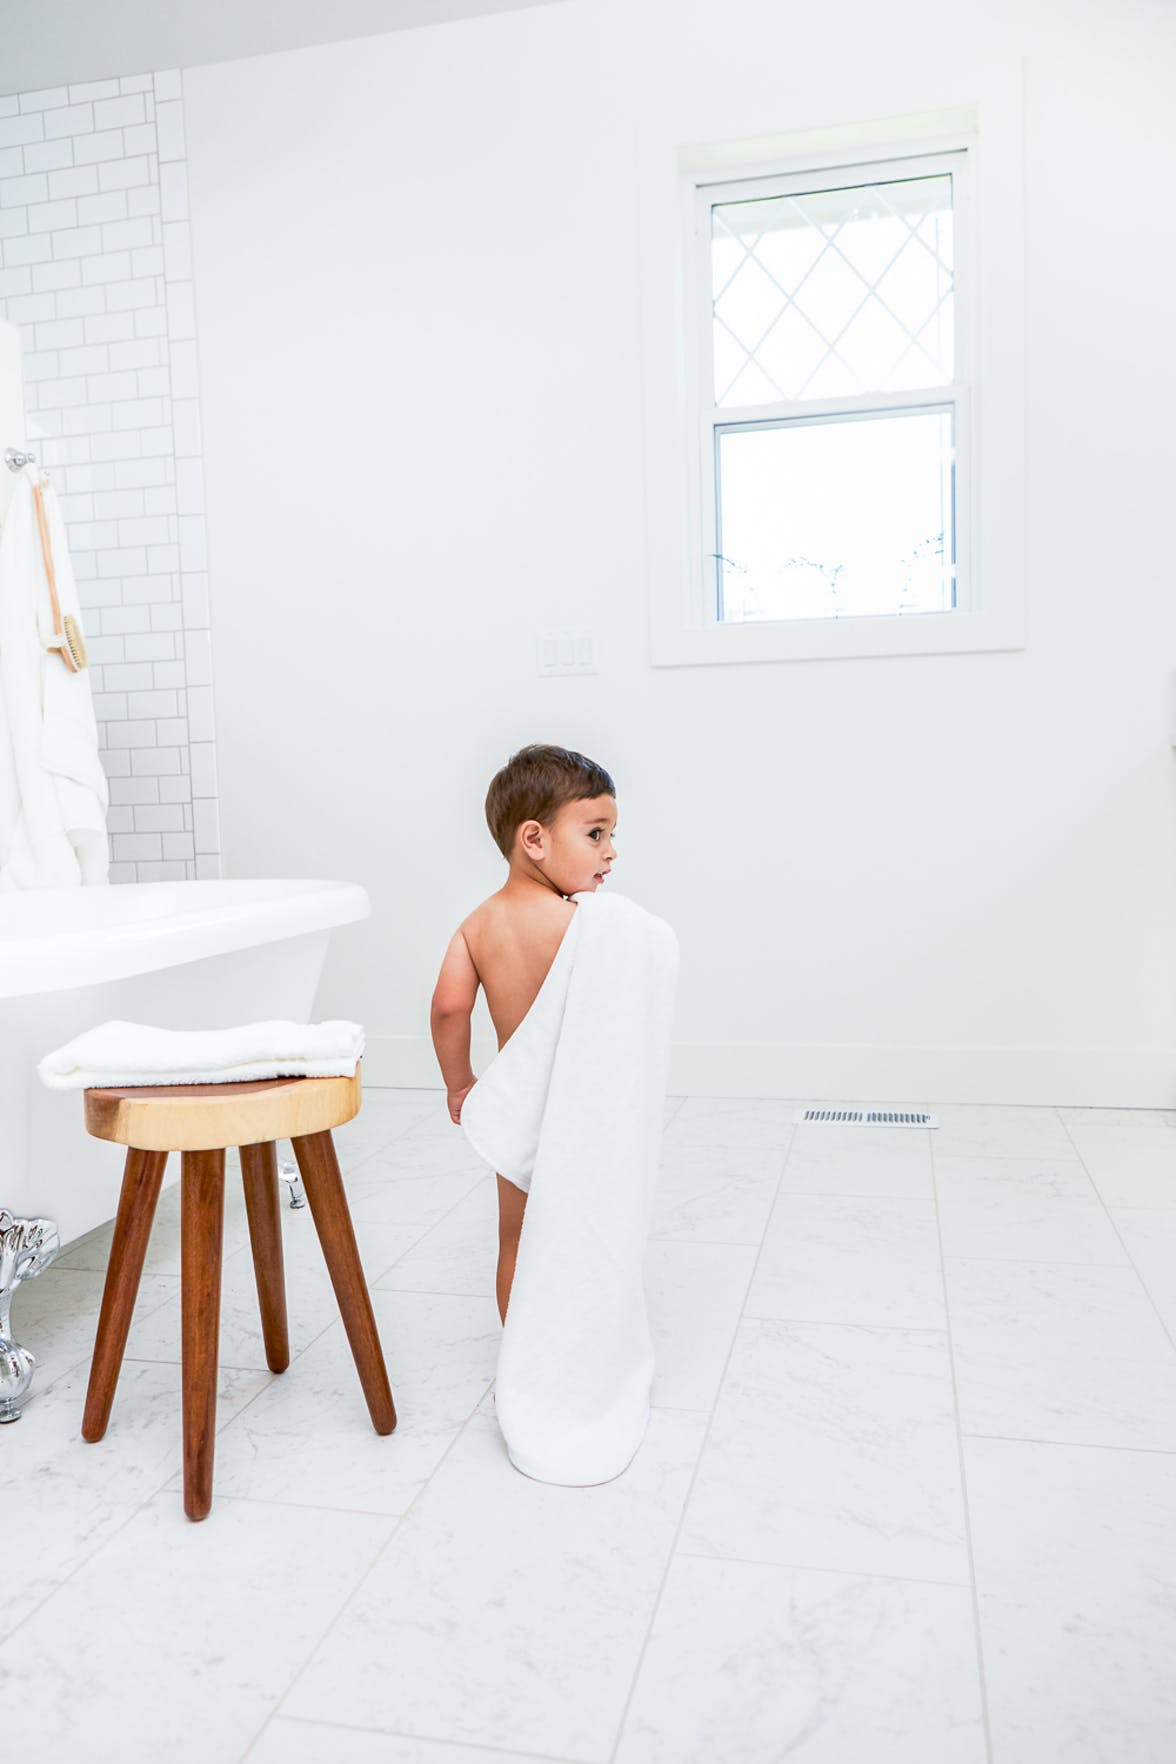 Young child holding a towel walking to a bathtub